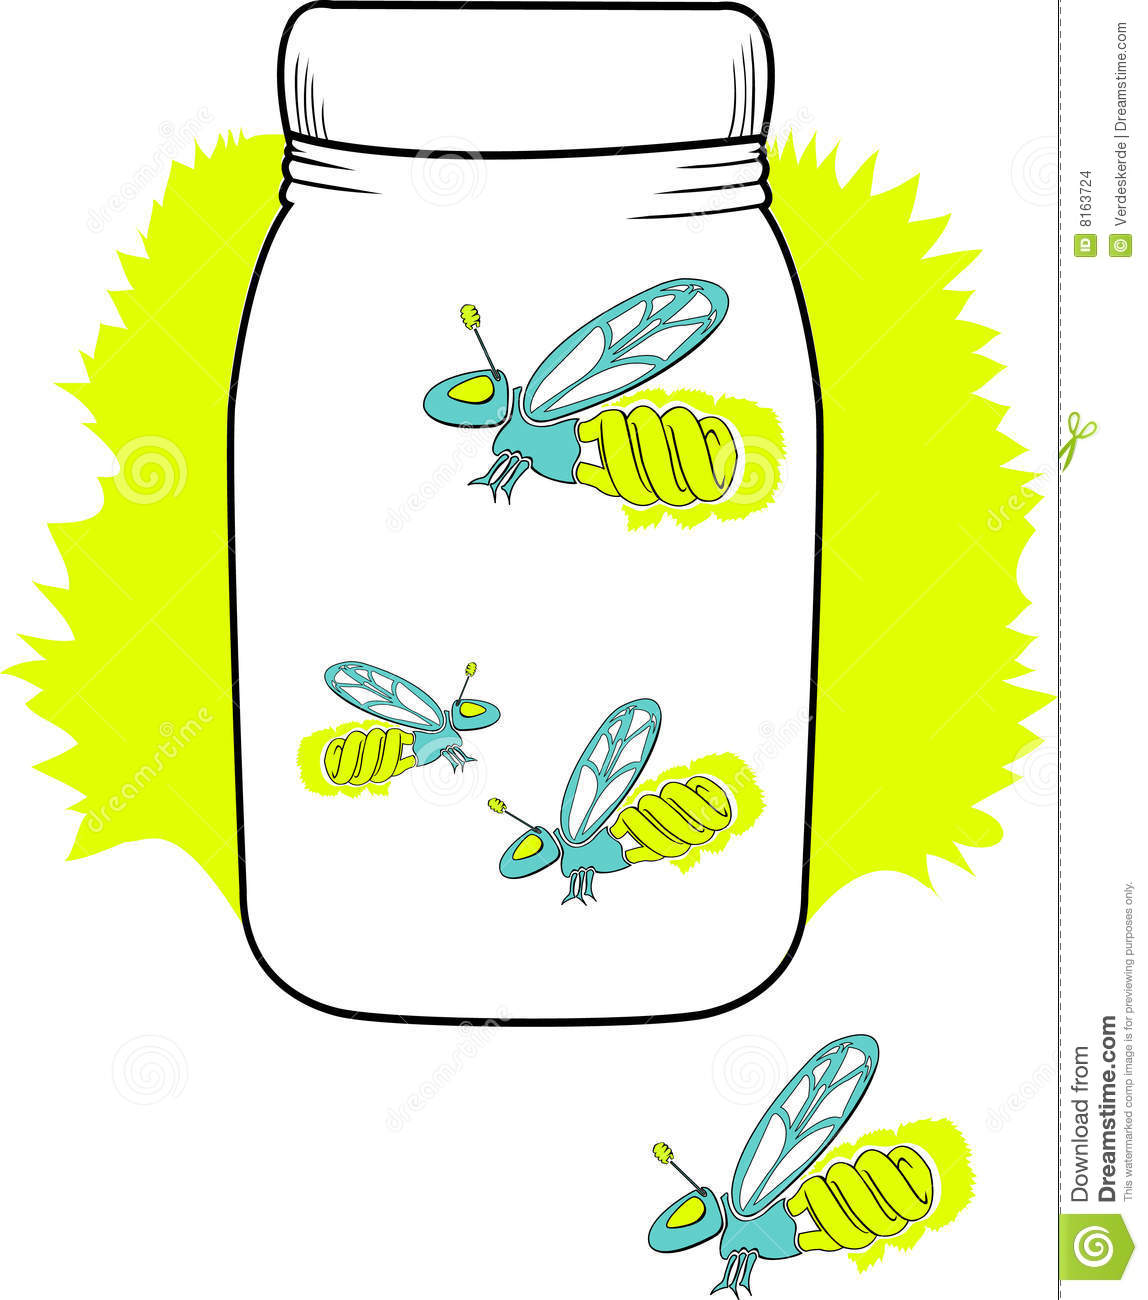 Firefly Jar Art Compact Florescent Firefly In A Jar Stock Vector Illustration Of